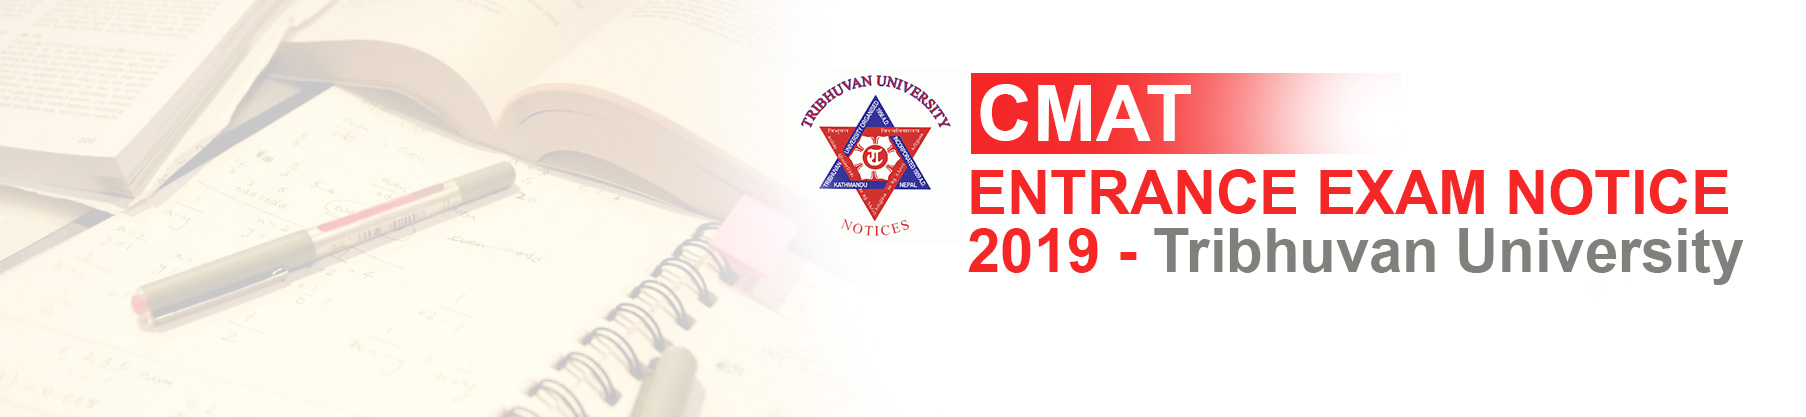 CMAT Entrance Exam 2019: Tribhuvan University